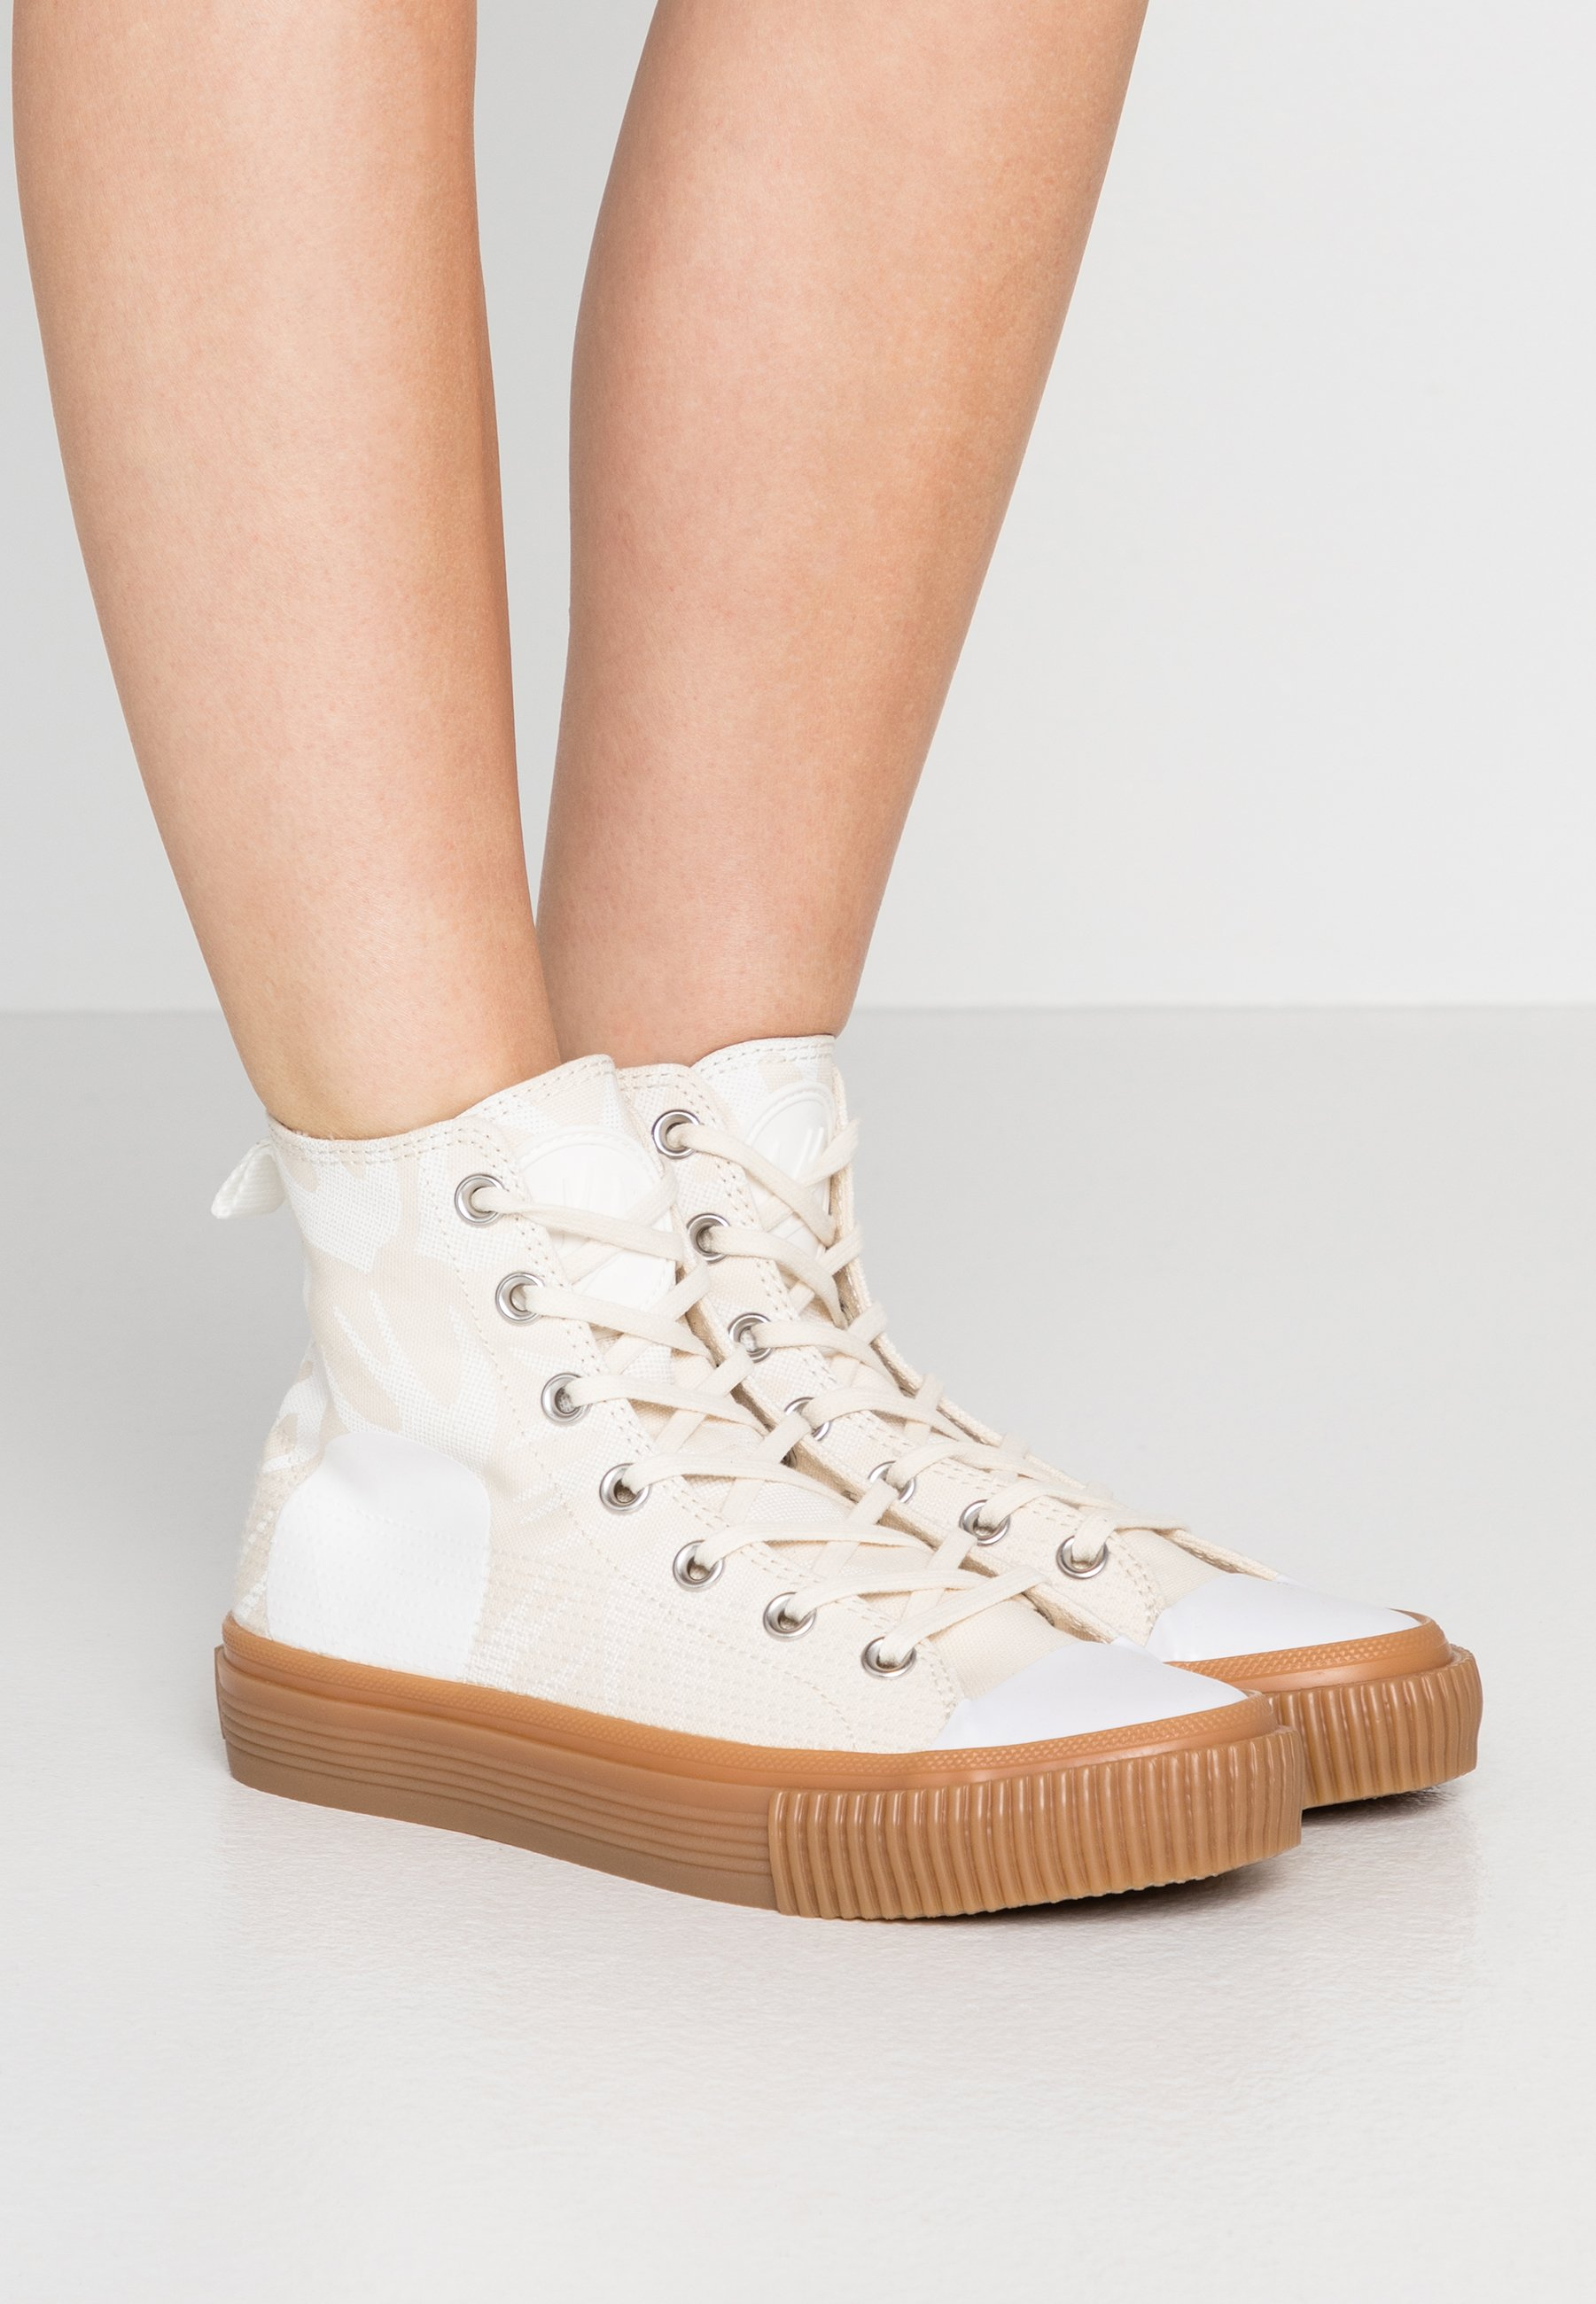 Mcq Alexander Mcqueen Swallow Plimsoll High Top Trainers Oyster White White Zalando Ie